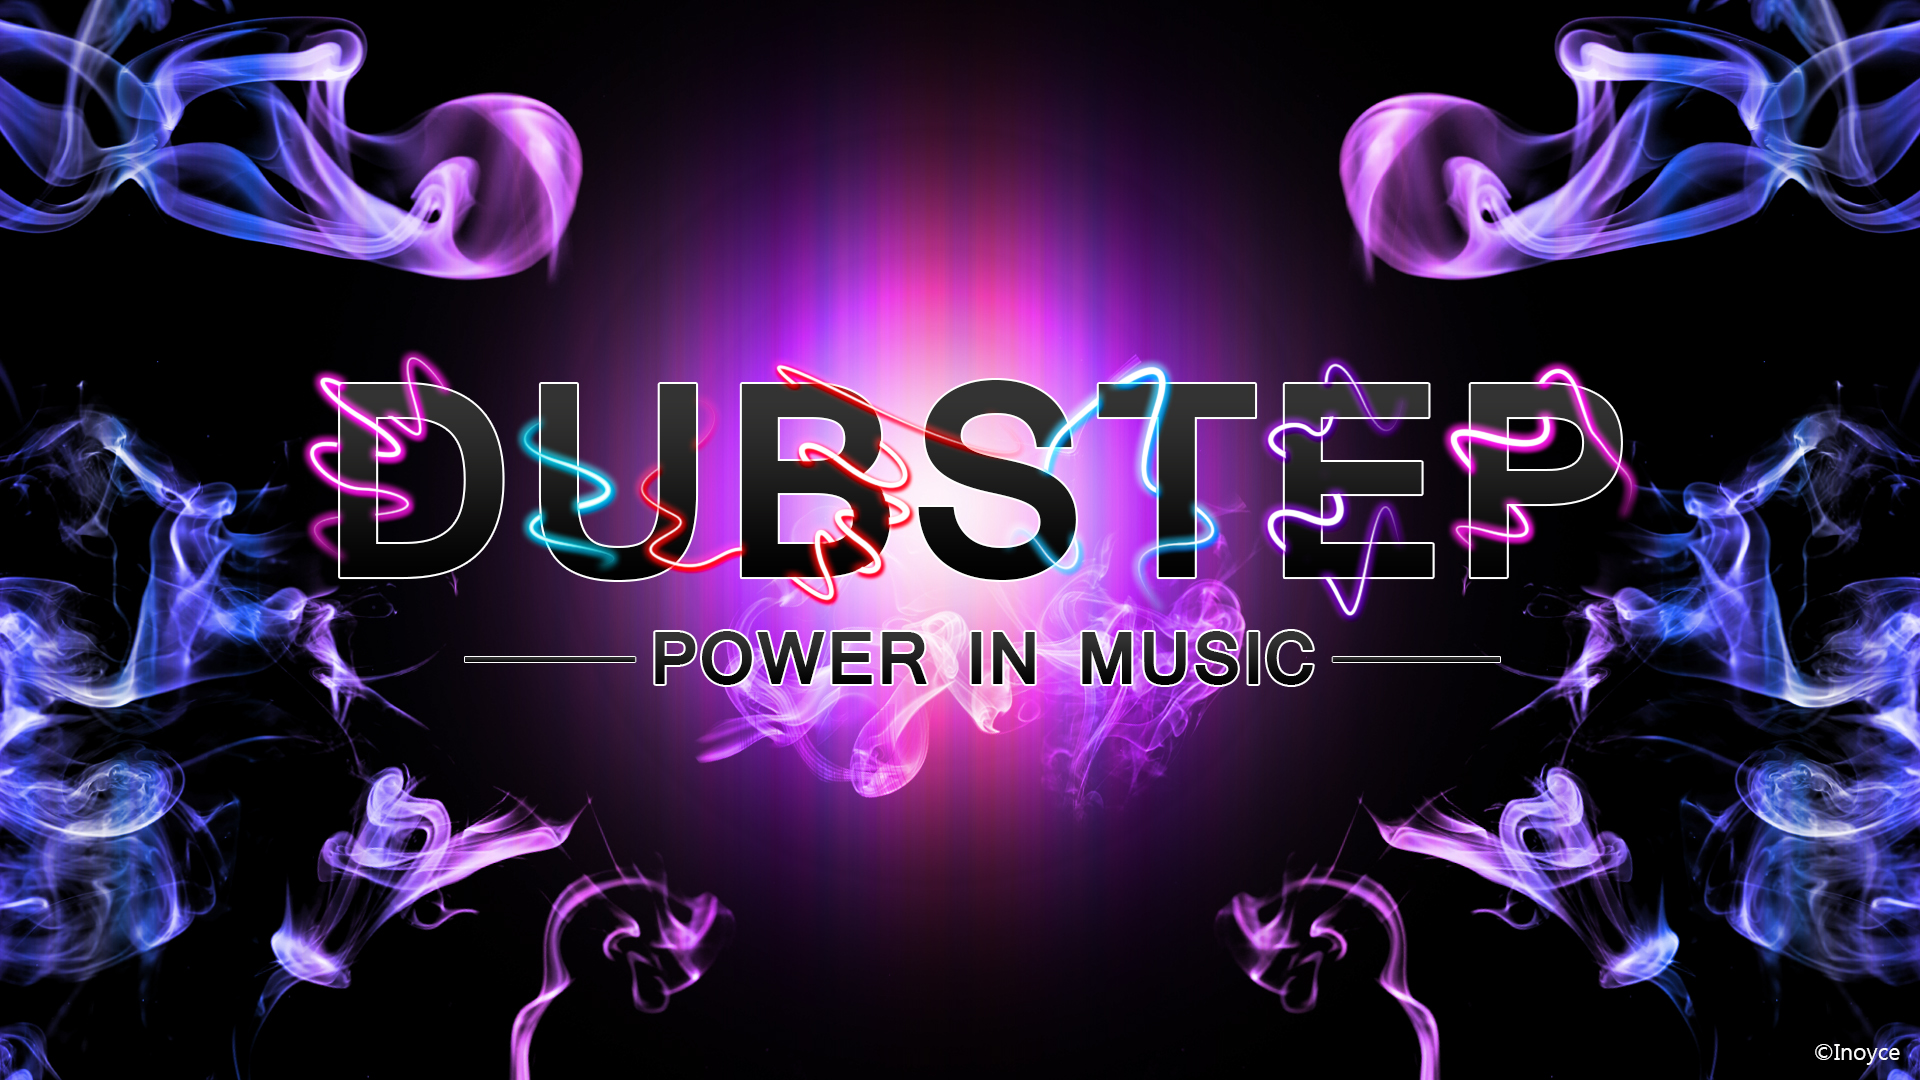 abstract dubstep wallpaper 1080p - photo #15